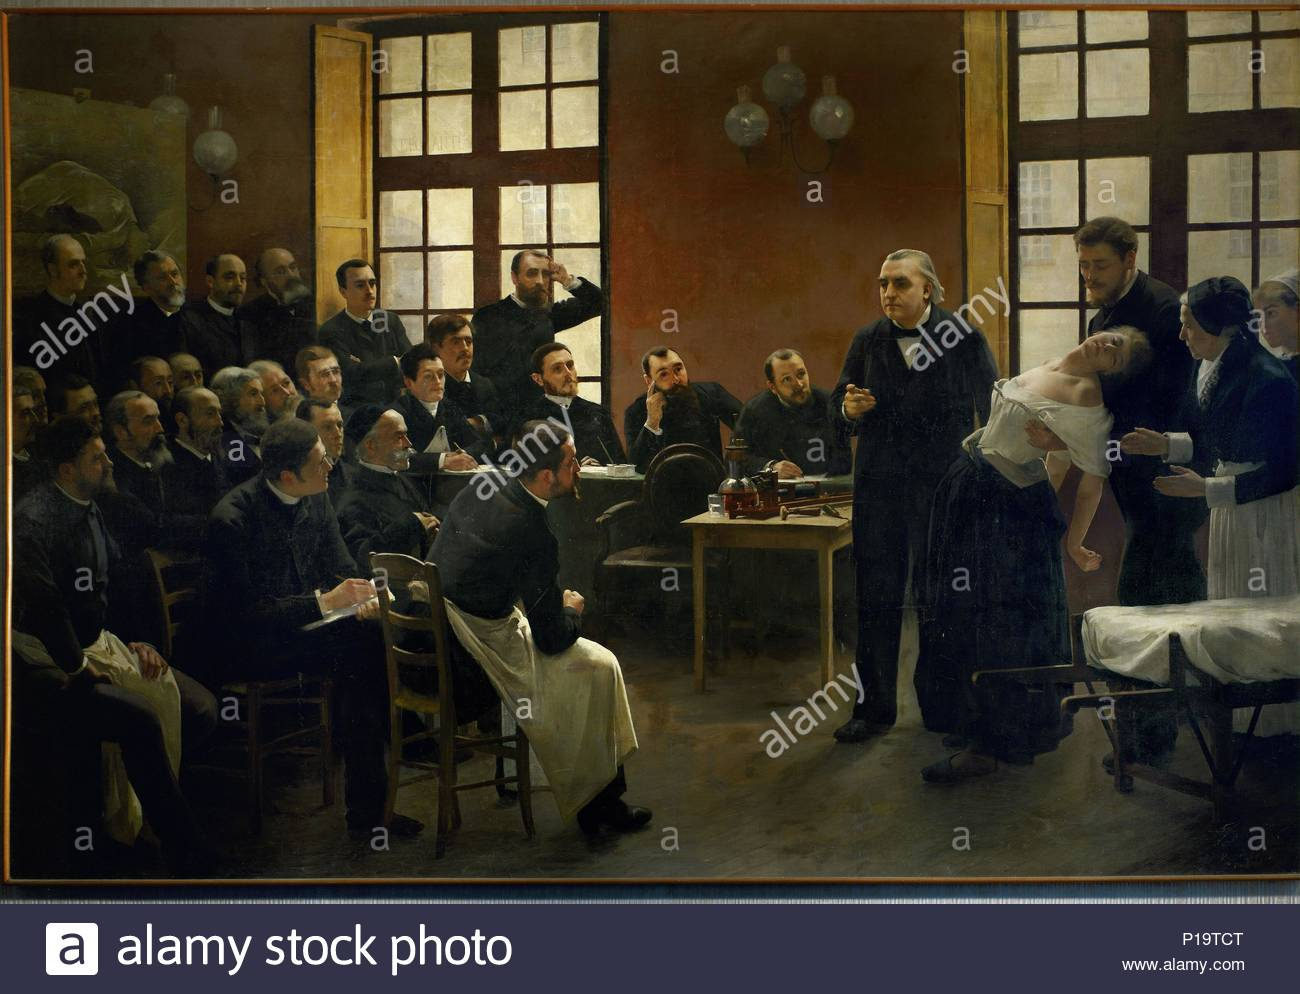 "A lesson on hysteria by Jean Martin Charcot (1825-93), pioneer of neurology, at the hospital "" la Salpetriere"". The patient is Blanche Wittmann, held by Babinski, who hypnotized the patients. Sigmund Freud took lessons with Charcot in 1885-86. Oil on canvas. Author: BROUILLET, ANDRE. Location: Musee d'histoire de la Medicine, Paris, France. - Stock Image"